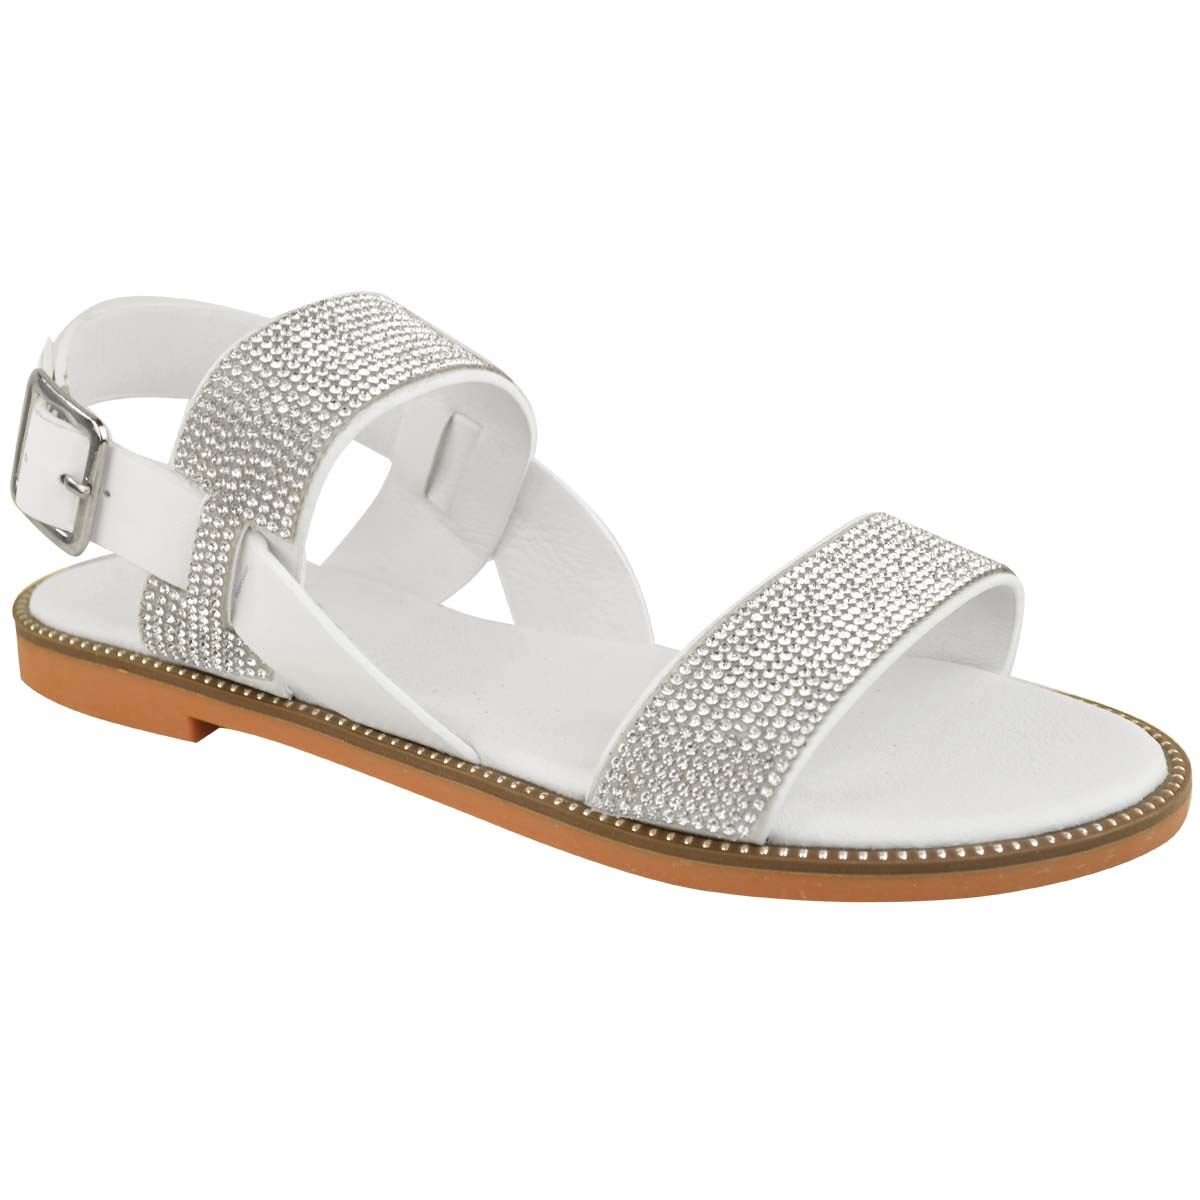 be9622f8409f New Ladies Womens Low Heel Flat Diamante Summer Sandals Strappy ...